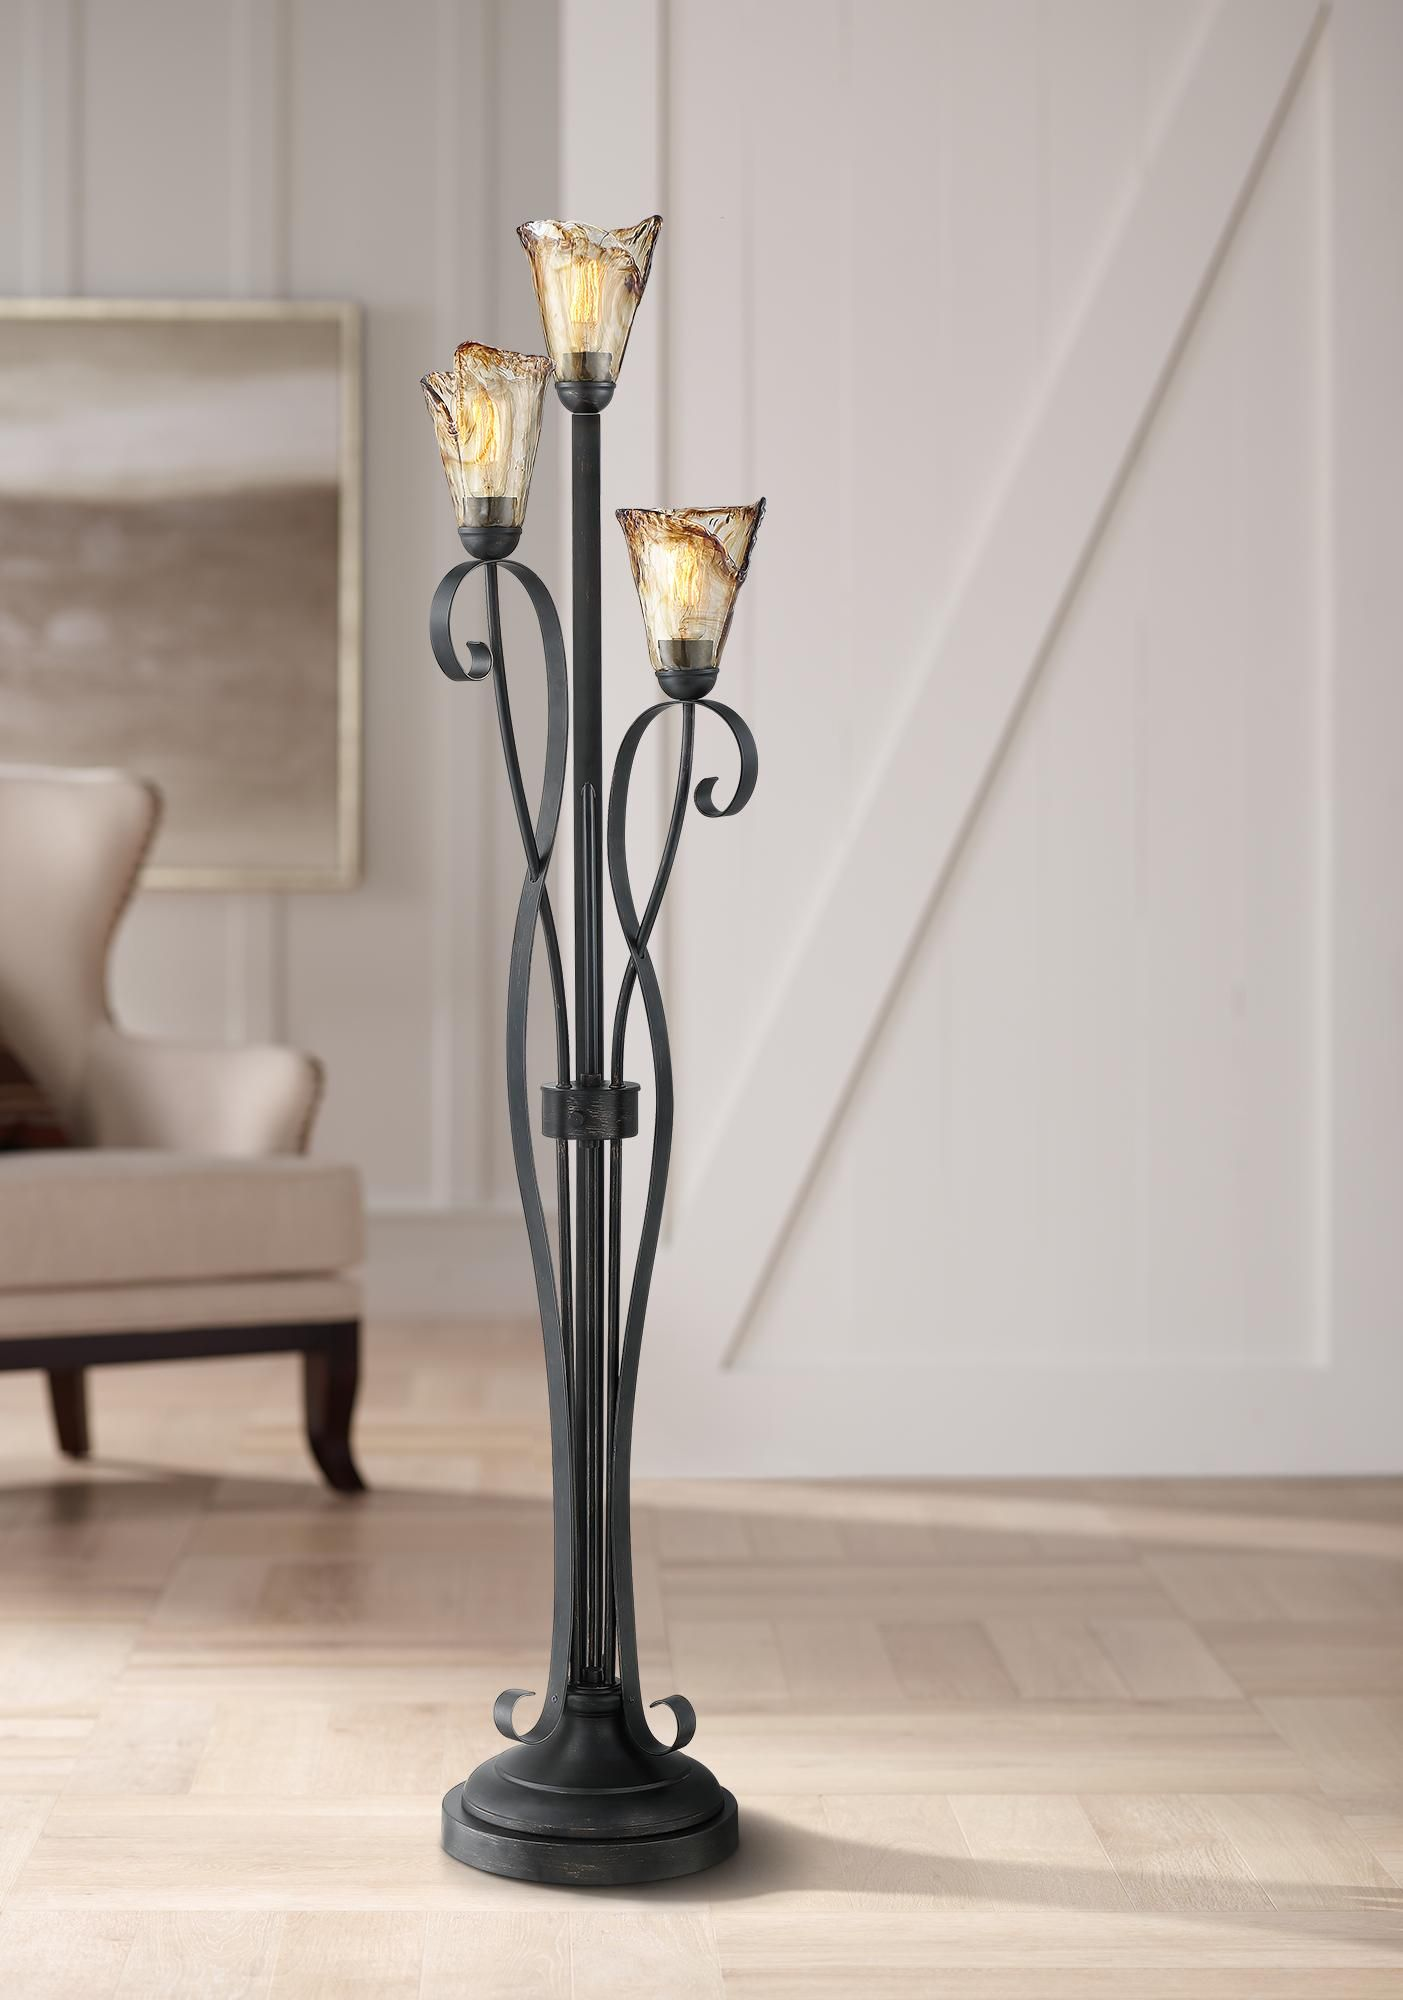 Floor Lamps Gardena Black And Amber Glass 3 Light Tree Floor Lamp In 2020 Tree Floor Lamp Floor Lamp Amber Glass